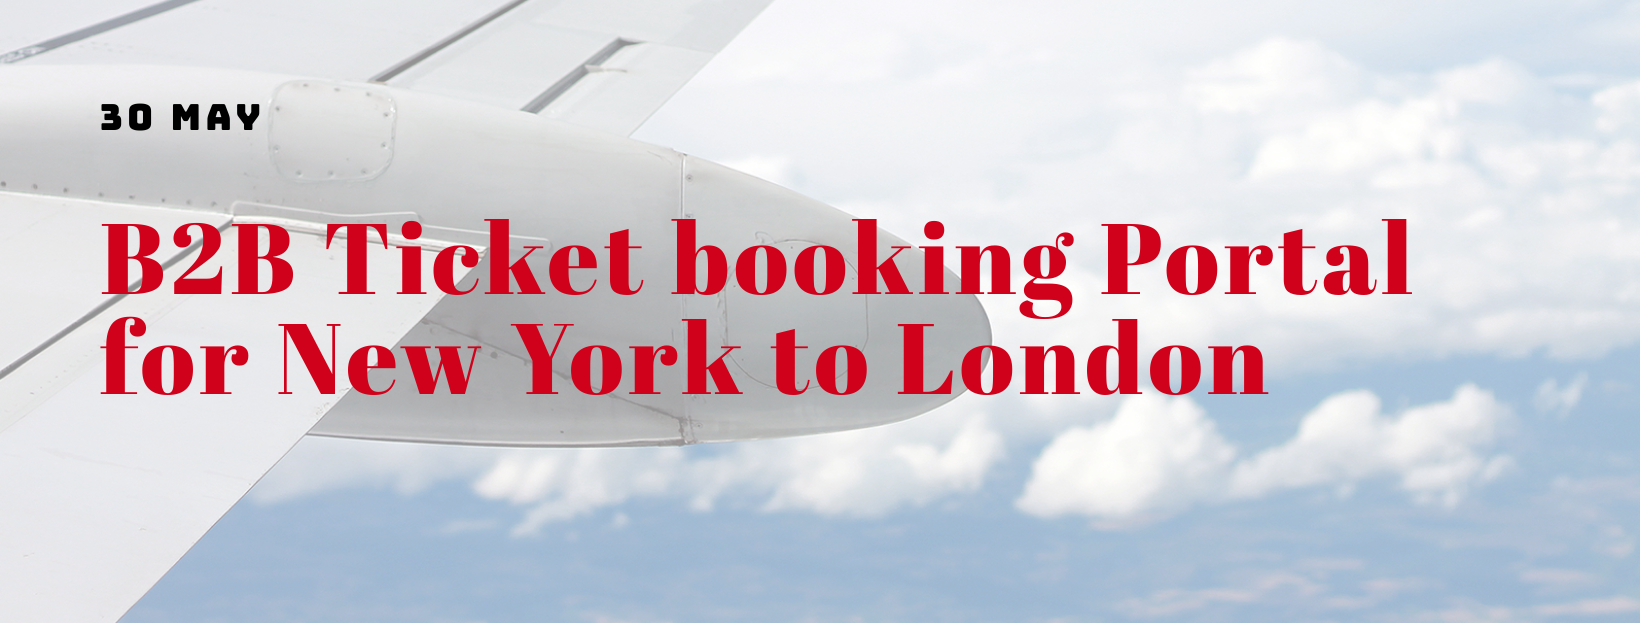 How much is the Cheapest Flight to London from New York?